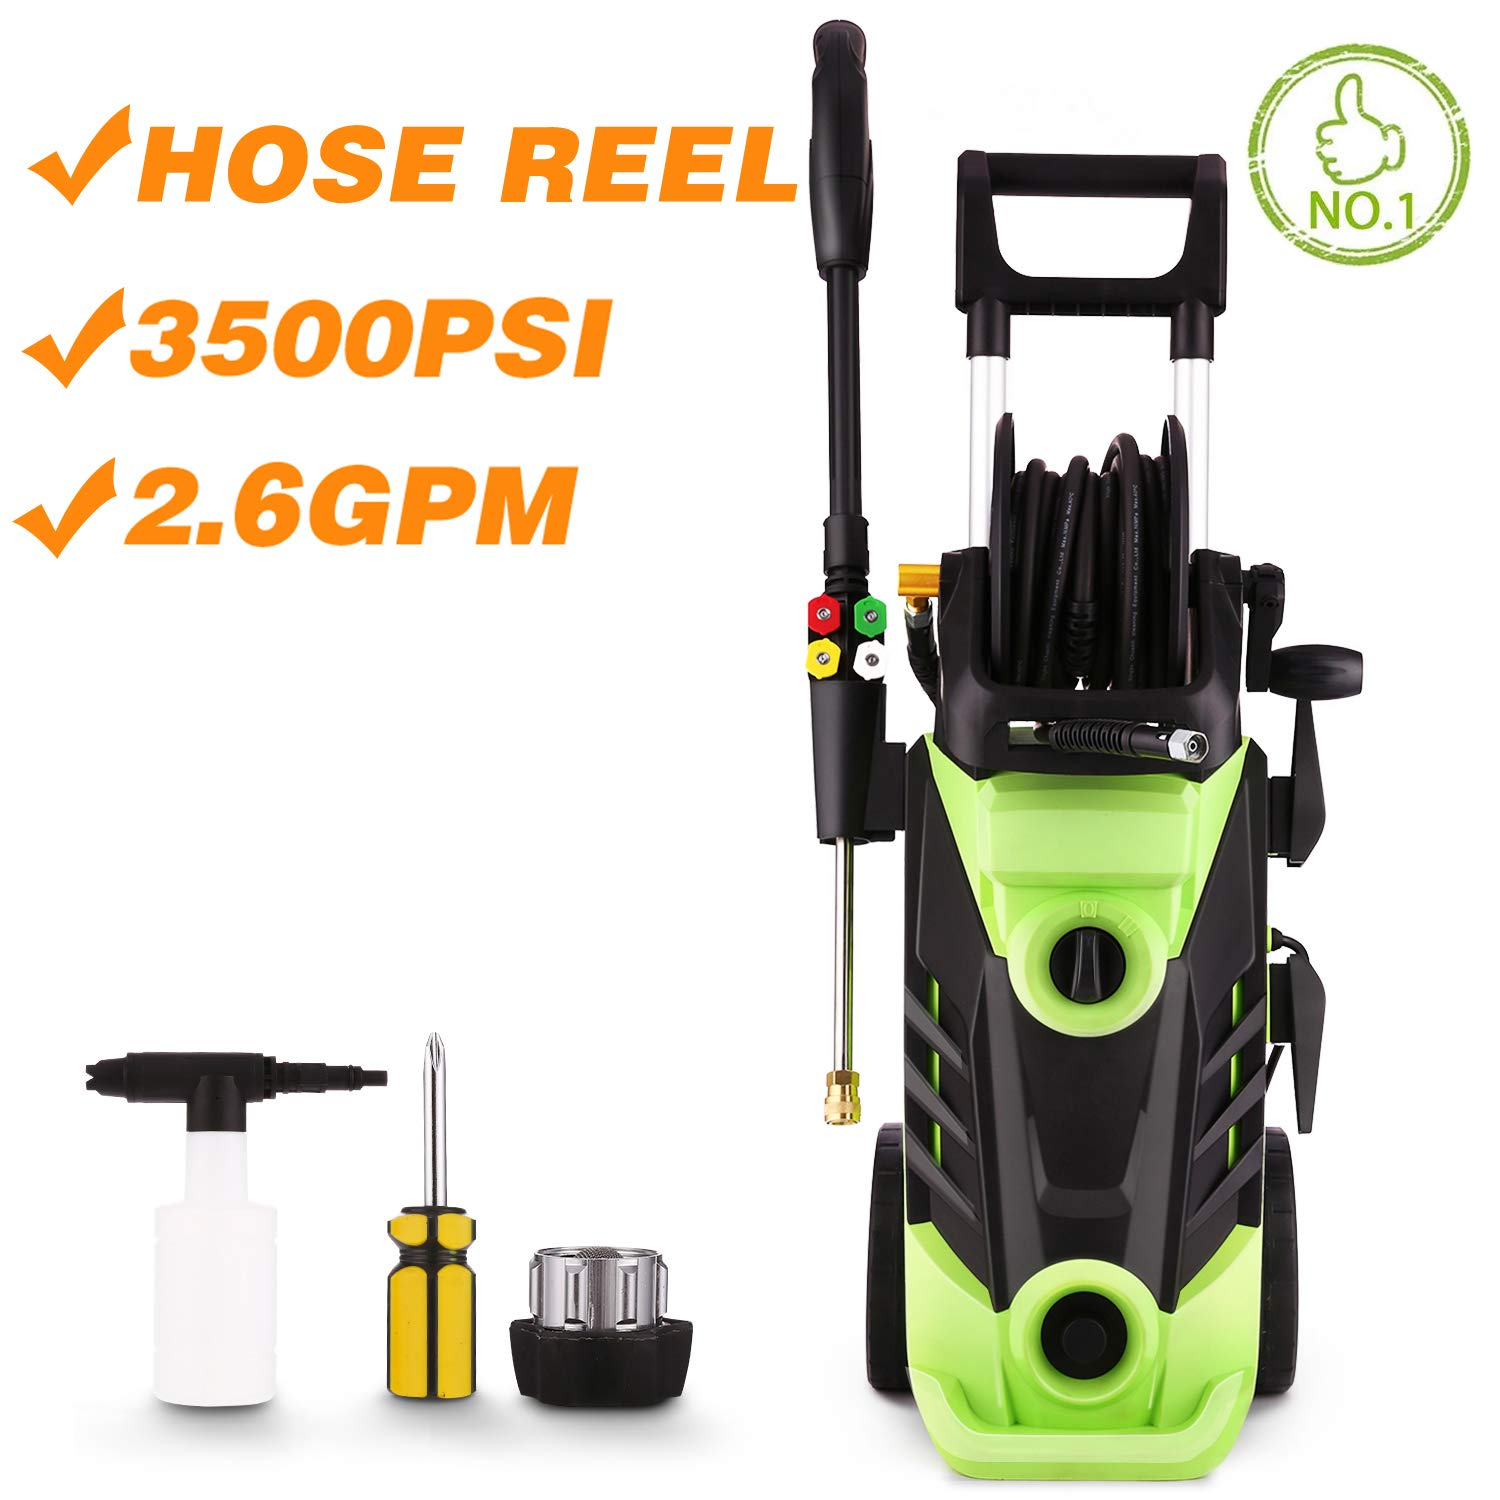 Homdox 3500 PSI Electric Pressure Washer, 1800W Power Washer, 2.6GPM High Pressure Washer, Professional Washer Cleaner Machine with 4 Interchangeable Nozzles,Hose with Reel,Green